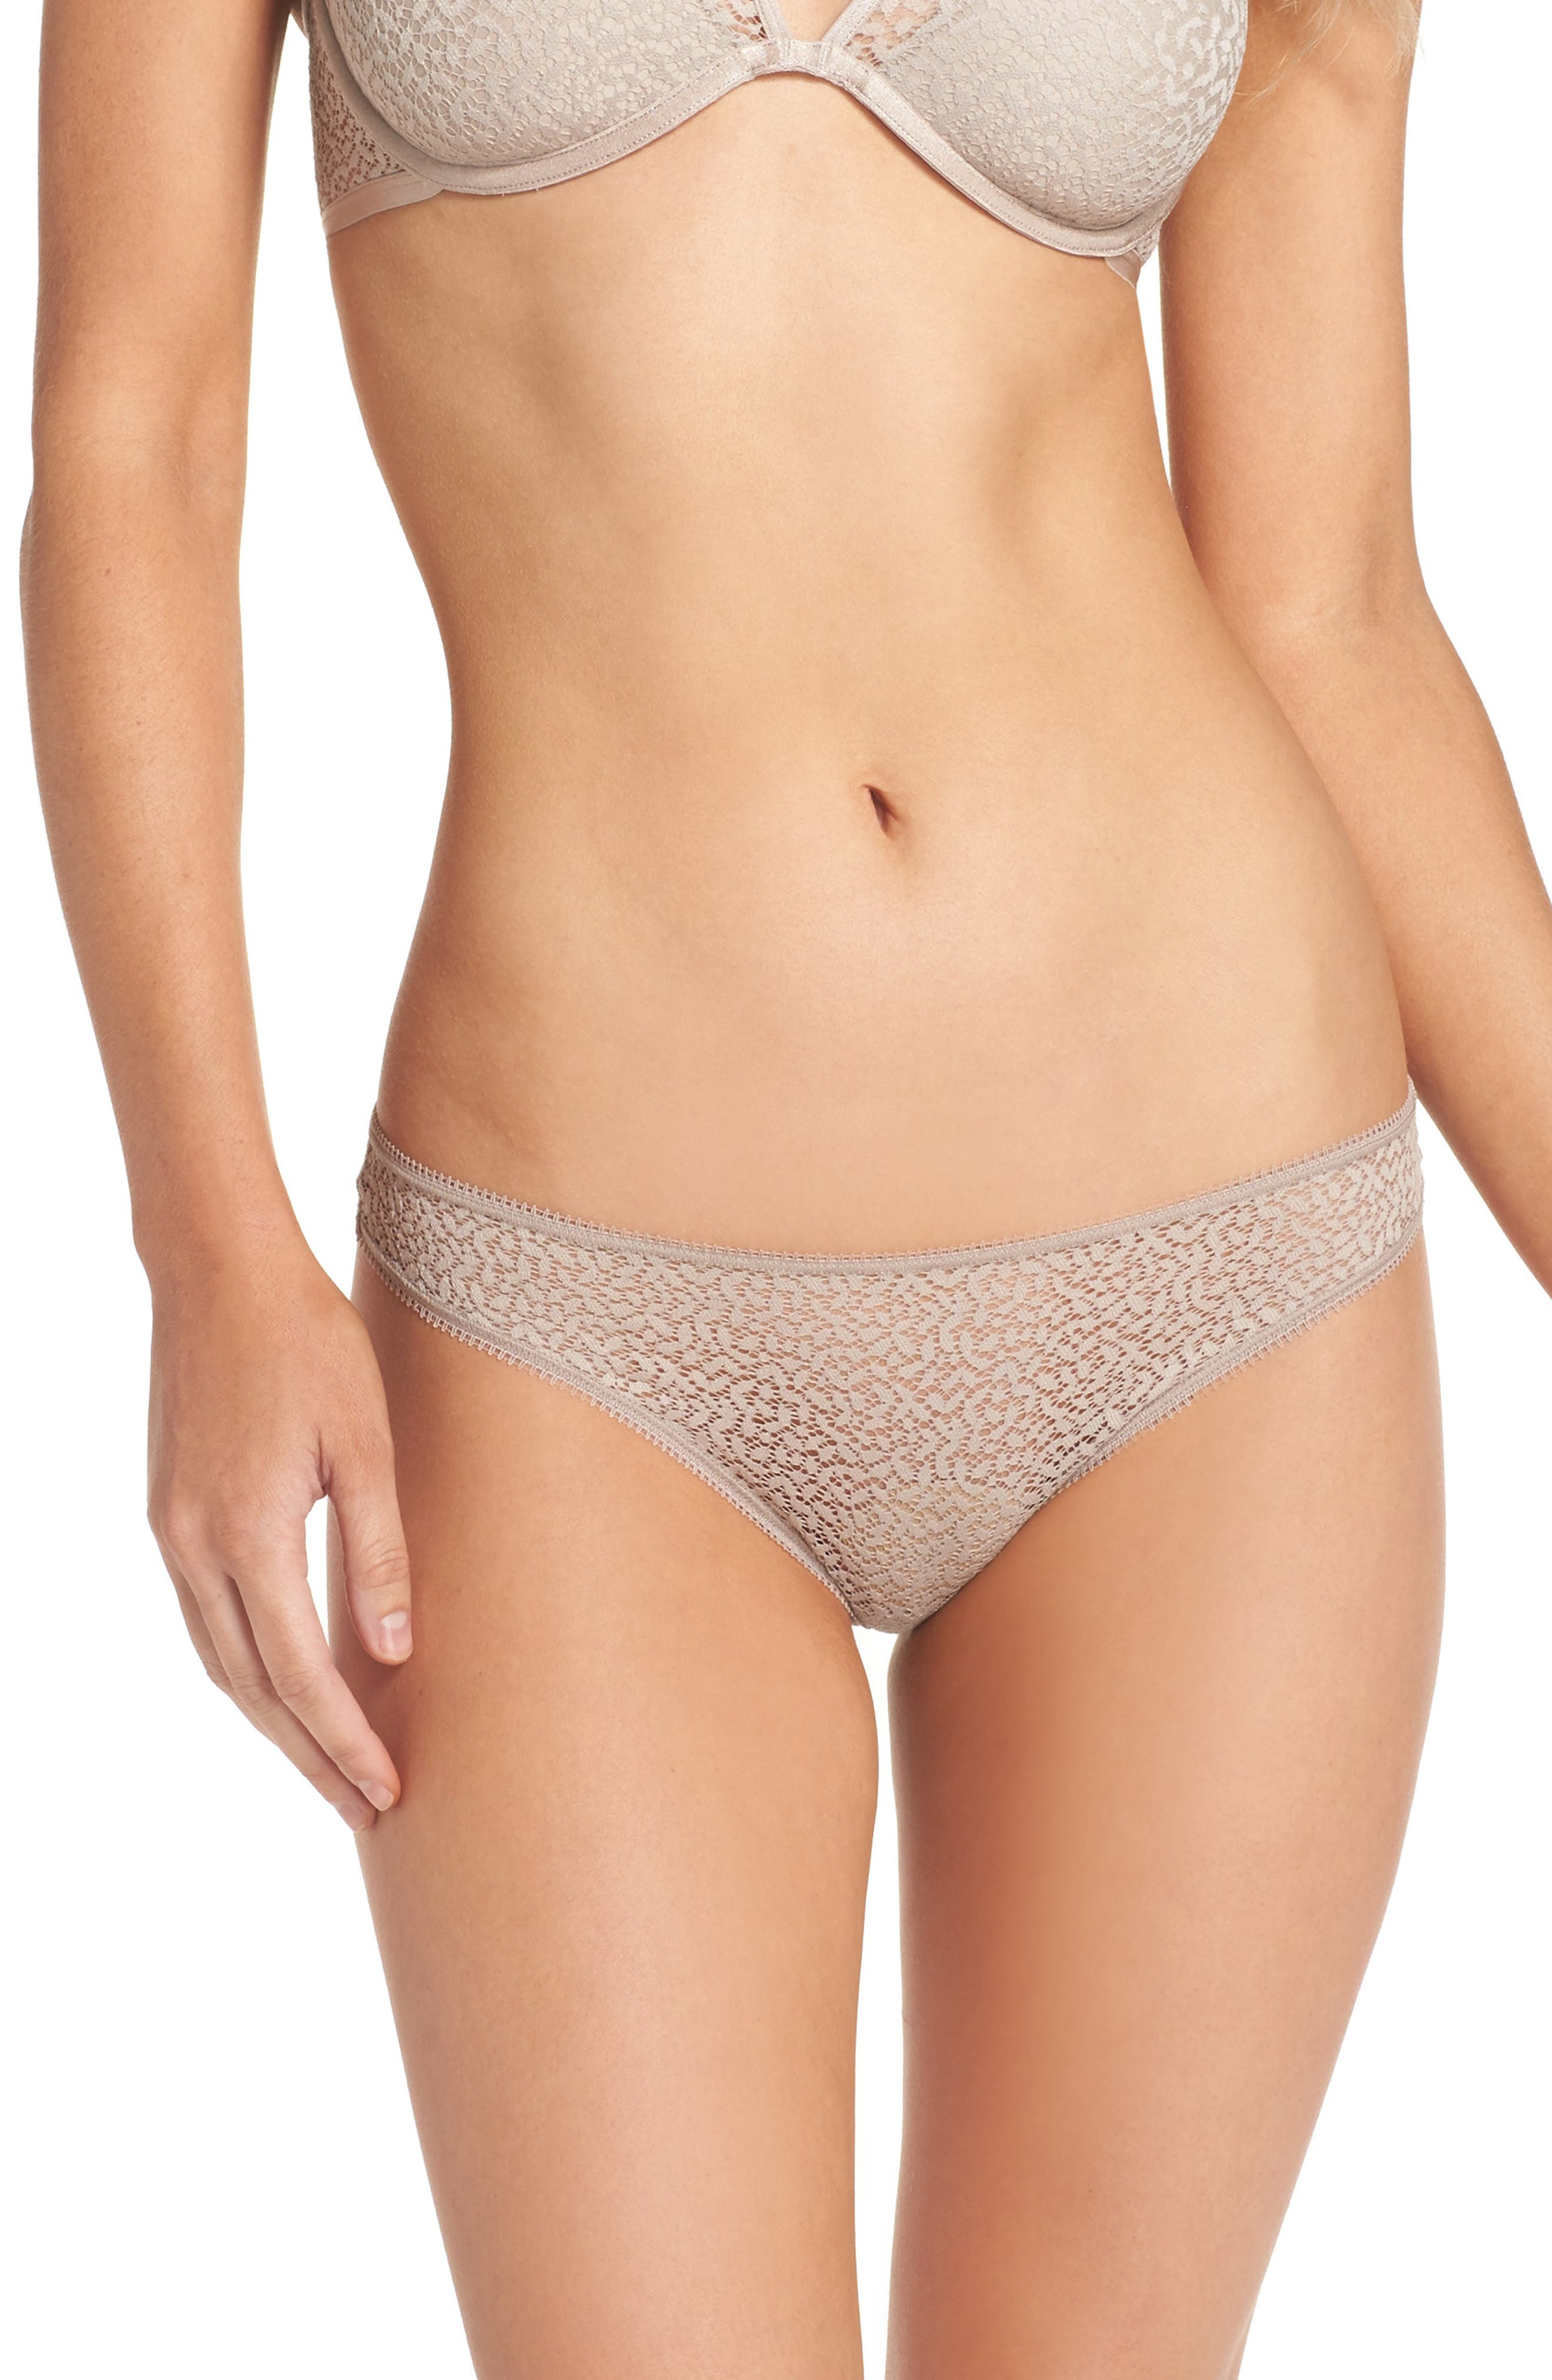 DKNY Modern Lace Thong (3 for $33)